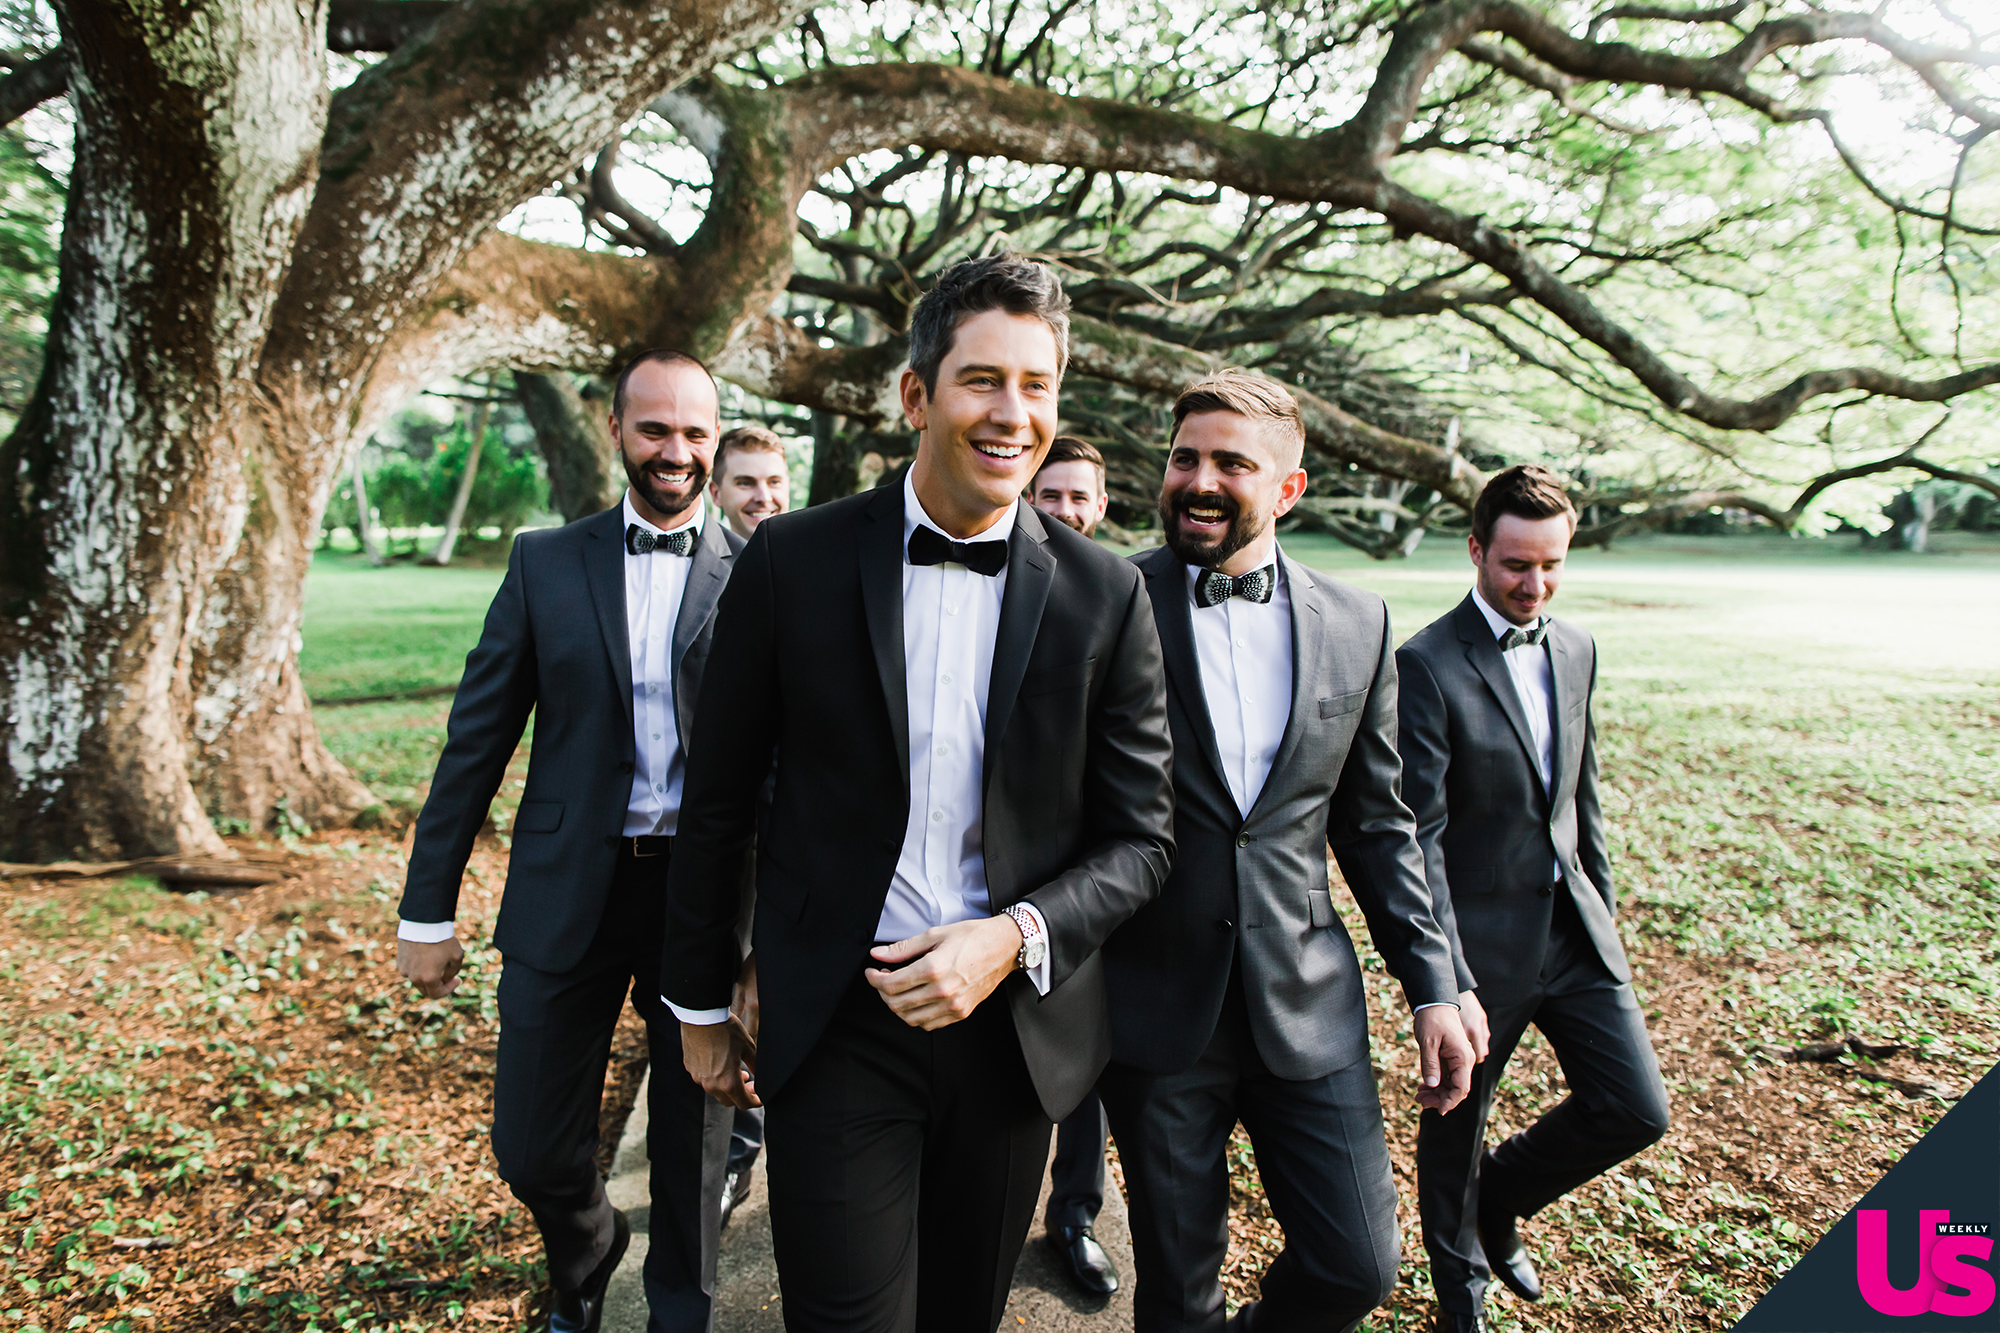 Arie-Luyendyk-Jr. -and-Lauren-Burnham-Wedding - One of the biggest influences when it came to the wedding was Twilight: Breaking Dawn , the movie!